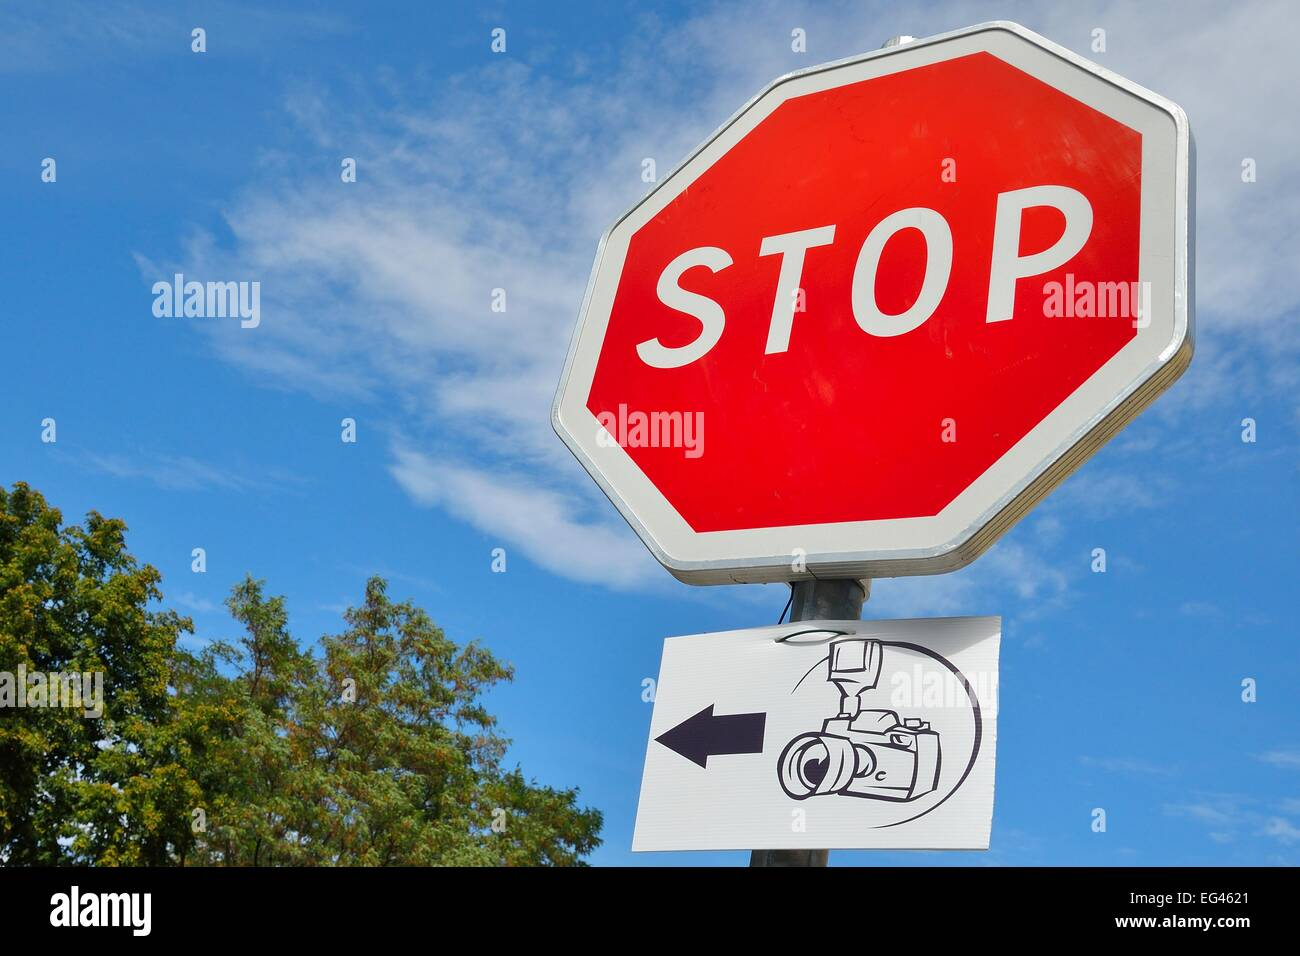 Stop sign with pointer to a lookout Point, Licciola in L'Ile-Rousse, Haute Corse, Corsica, France - Stock Image